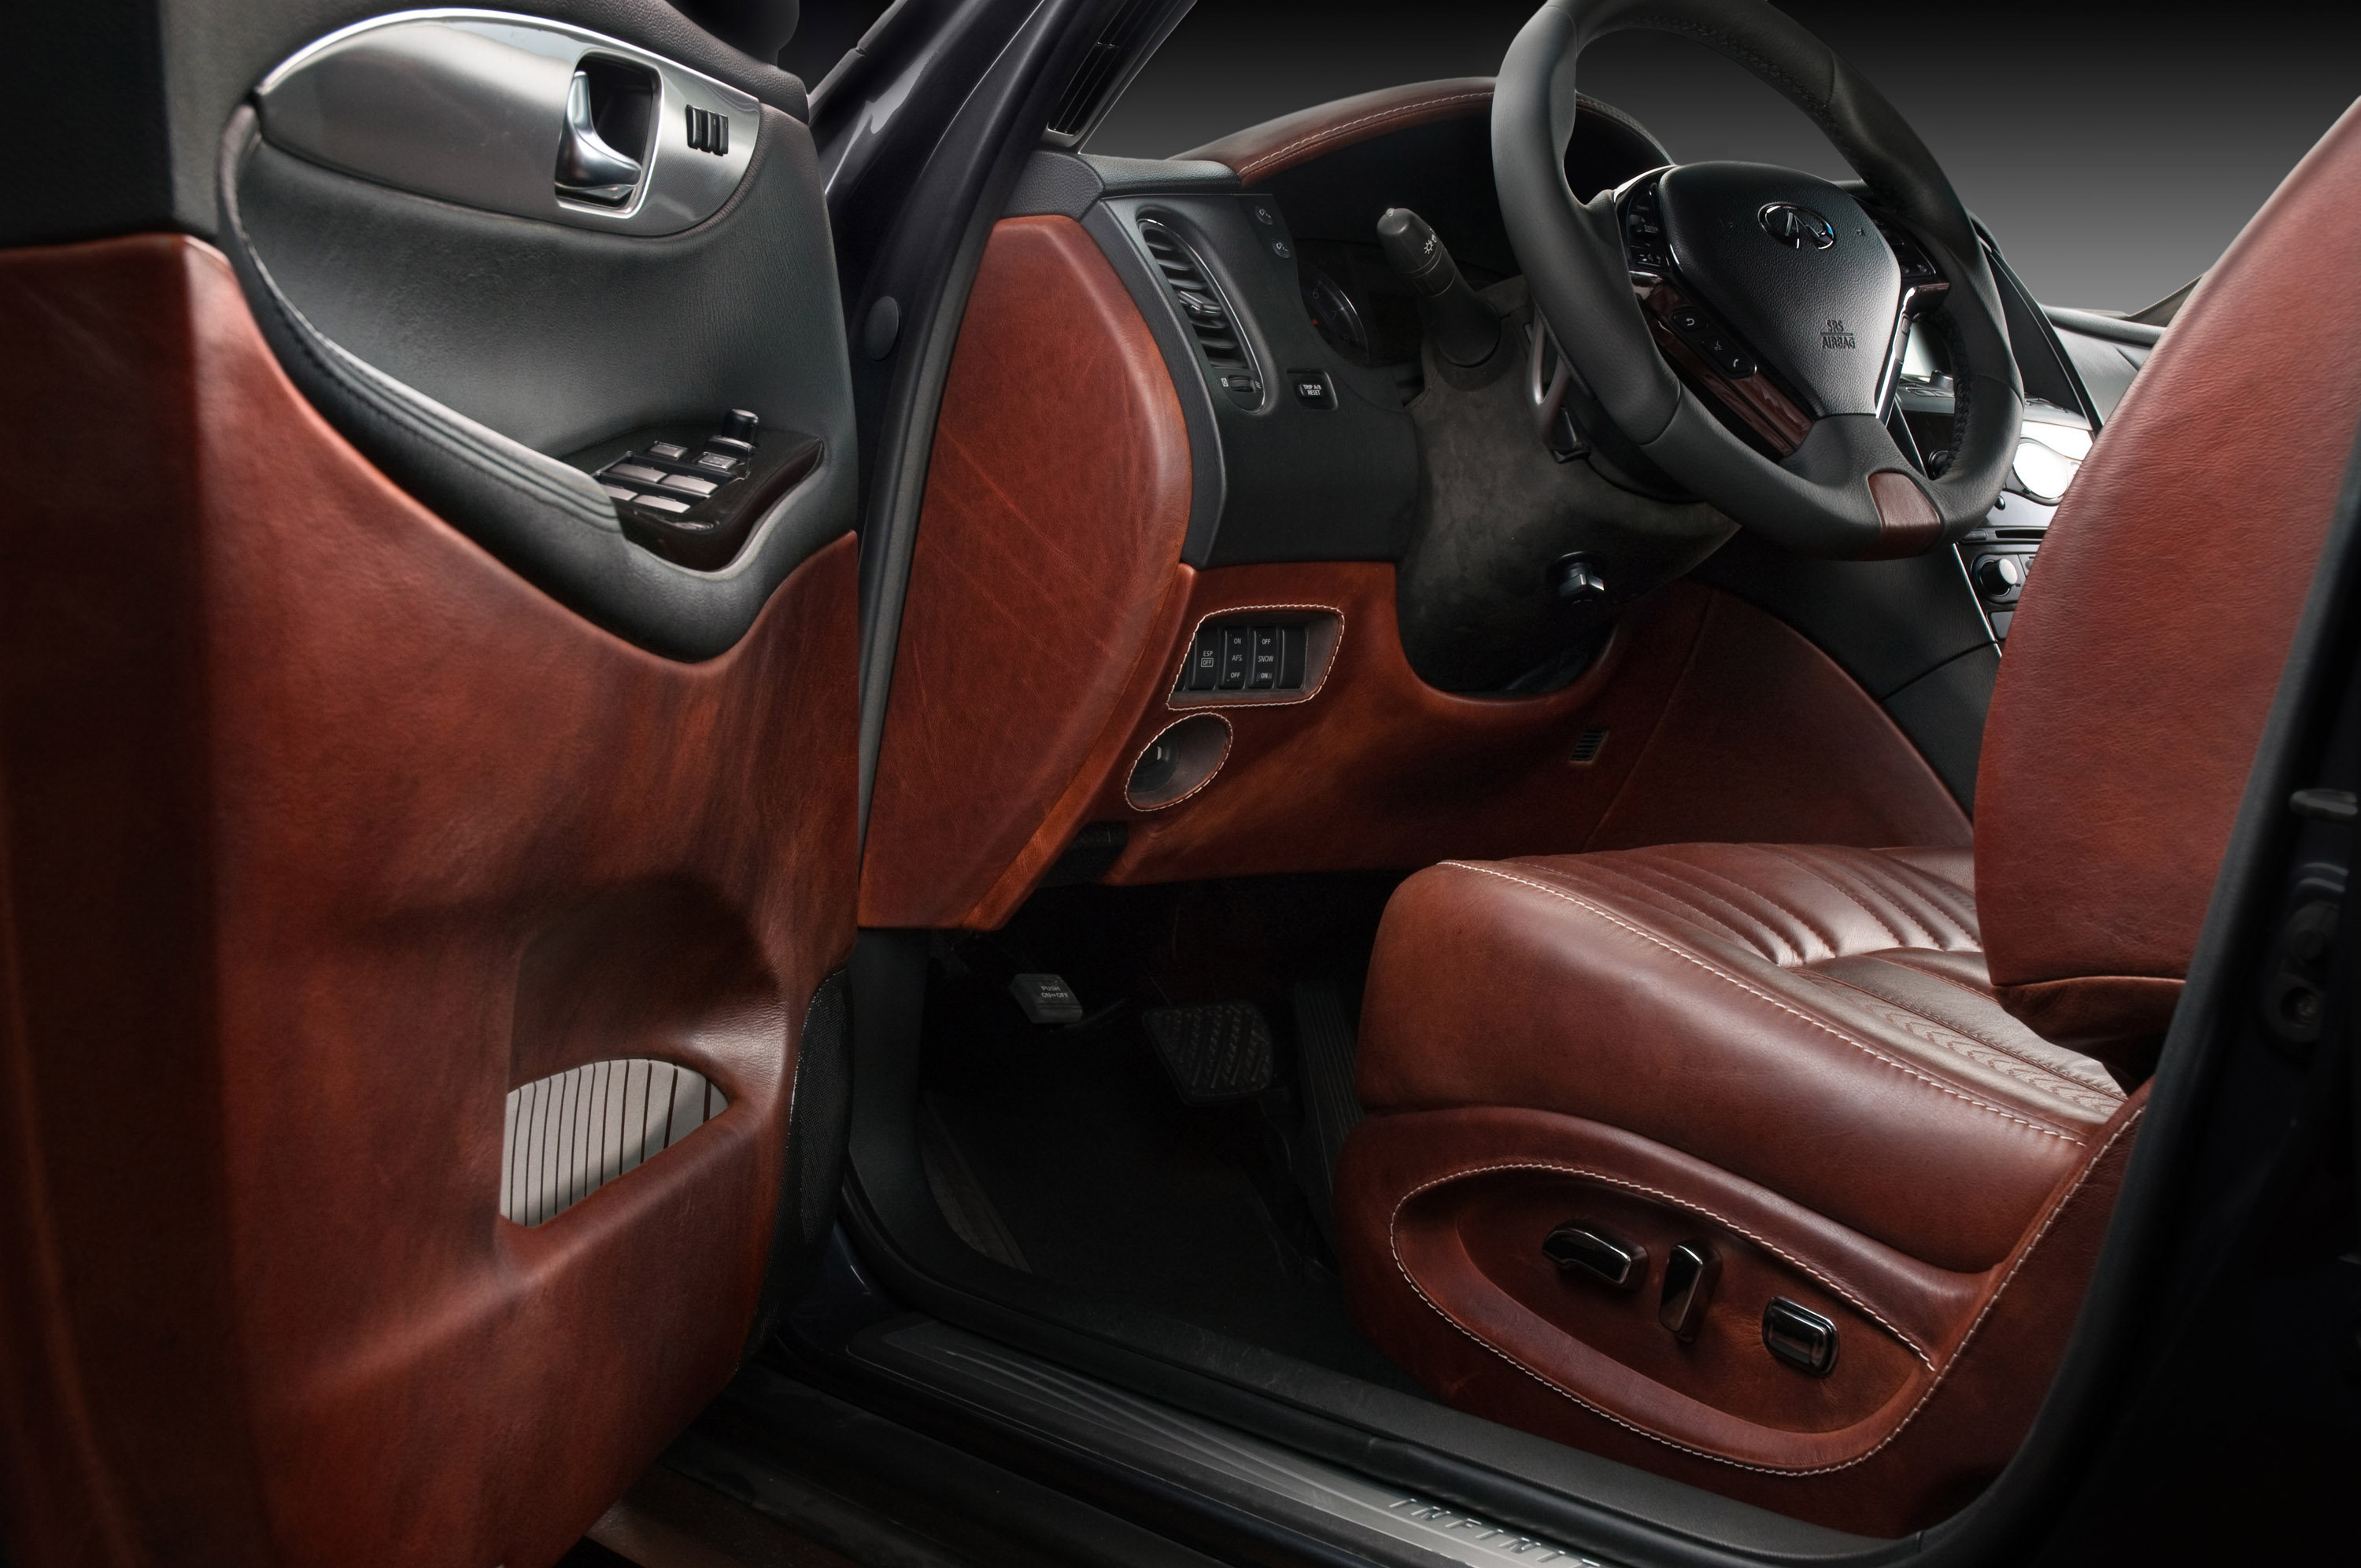 2013 infiniti ex black images hd cars wallpaper wow upgraded leather interior nissan forum nissan forums image vanachro images vanachro Images